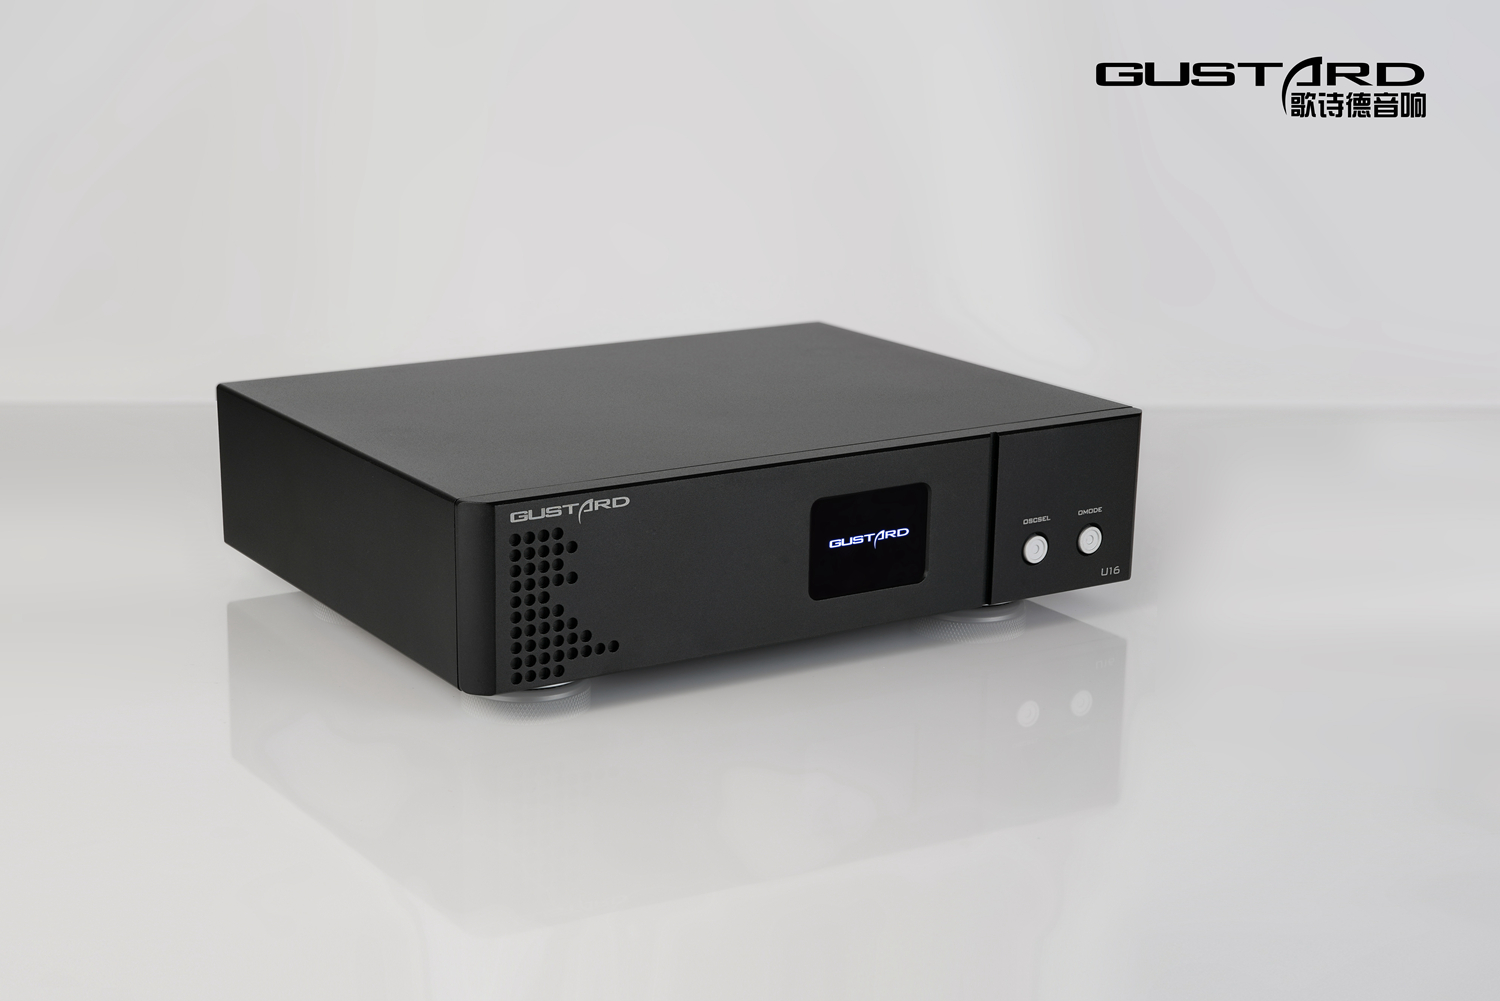 2019 New GUSTARD U16 Digital Audio Decoder Interface USB Sound Card Adopting ESS Solution Support 768KHz DSD512 AC110V Optional2019 New GUSTARD U16 Digital Audio Decoder Interface USB Sound Card Adopting ESS Solution Support 768KHz DSD512 AC110V Optional